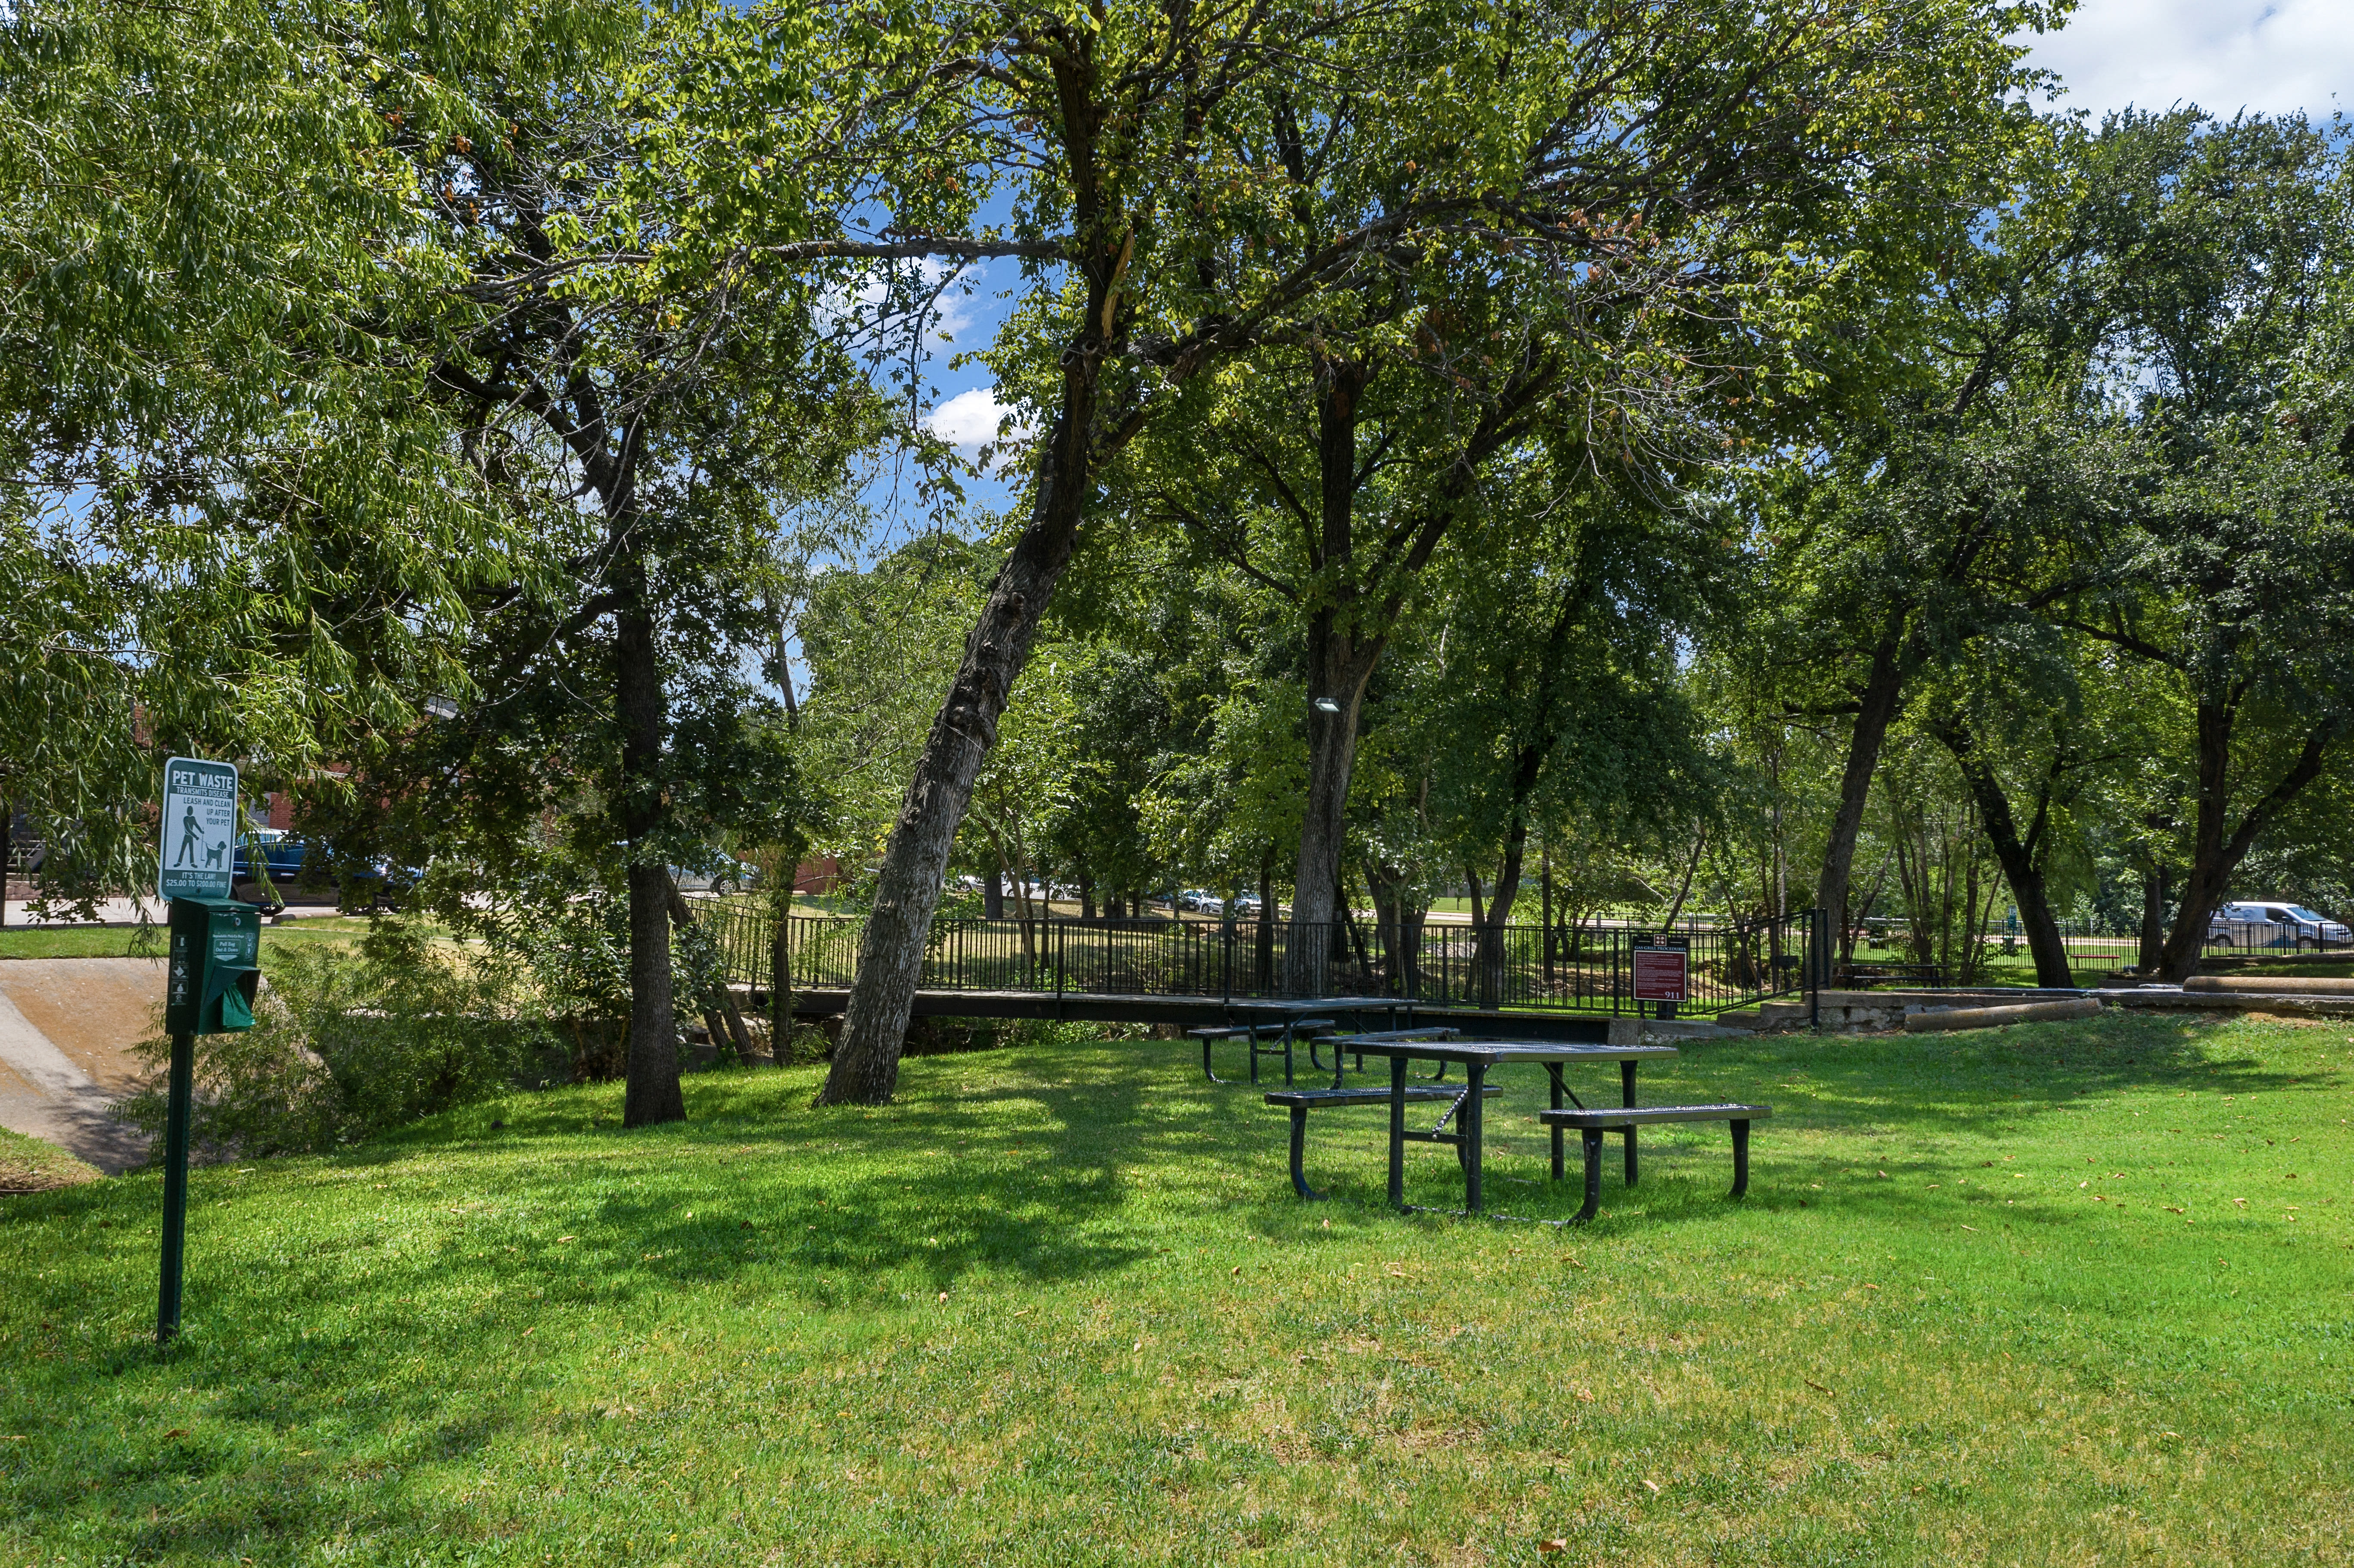 Green space at Windmill Terrace in Bedford, Texas